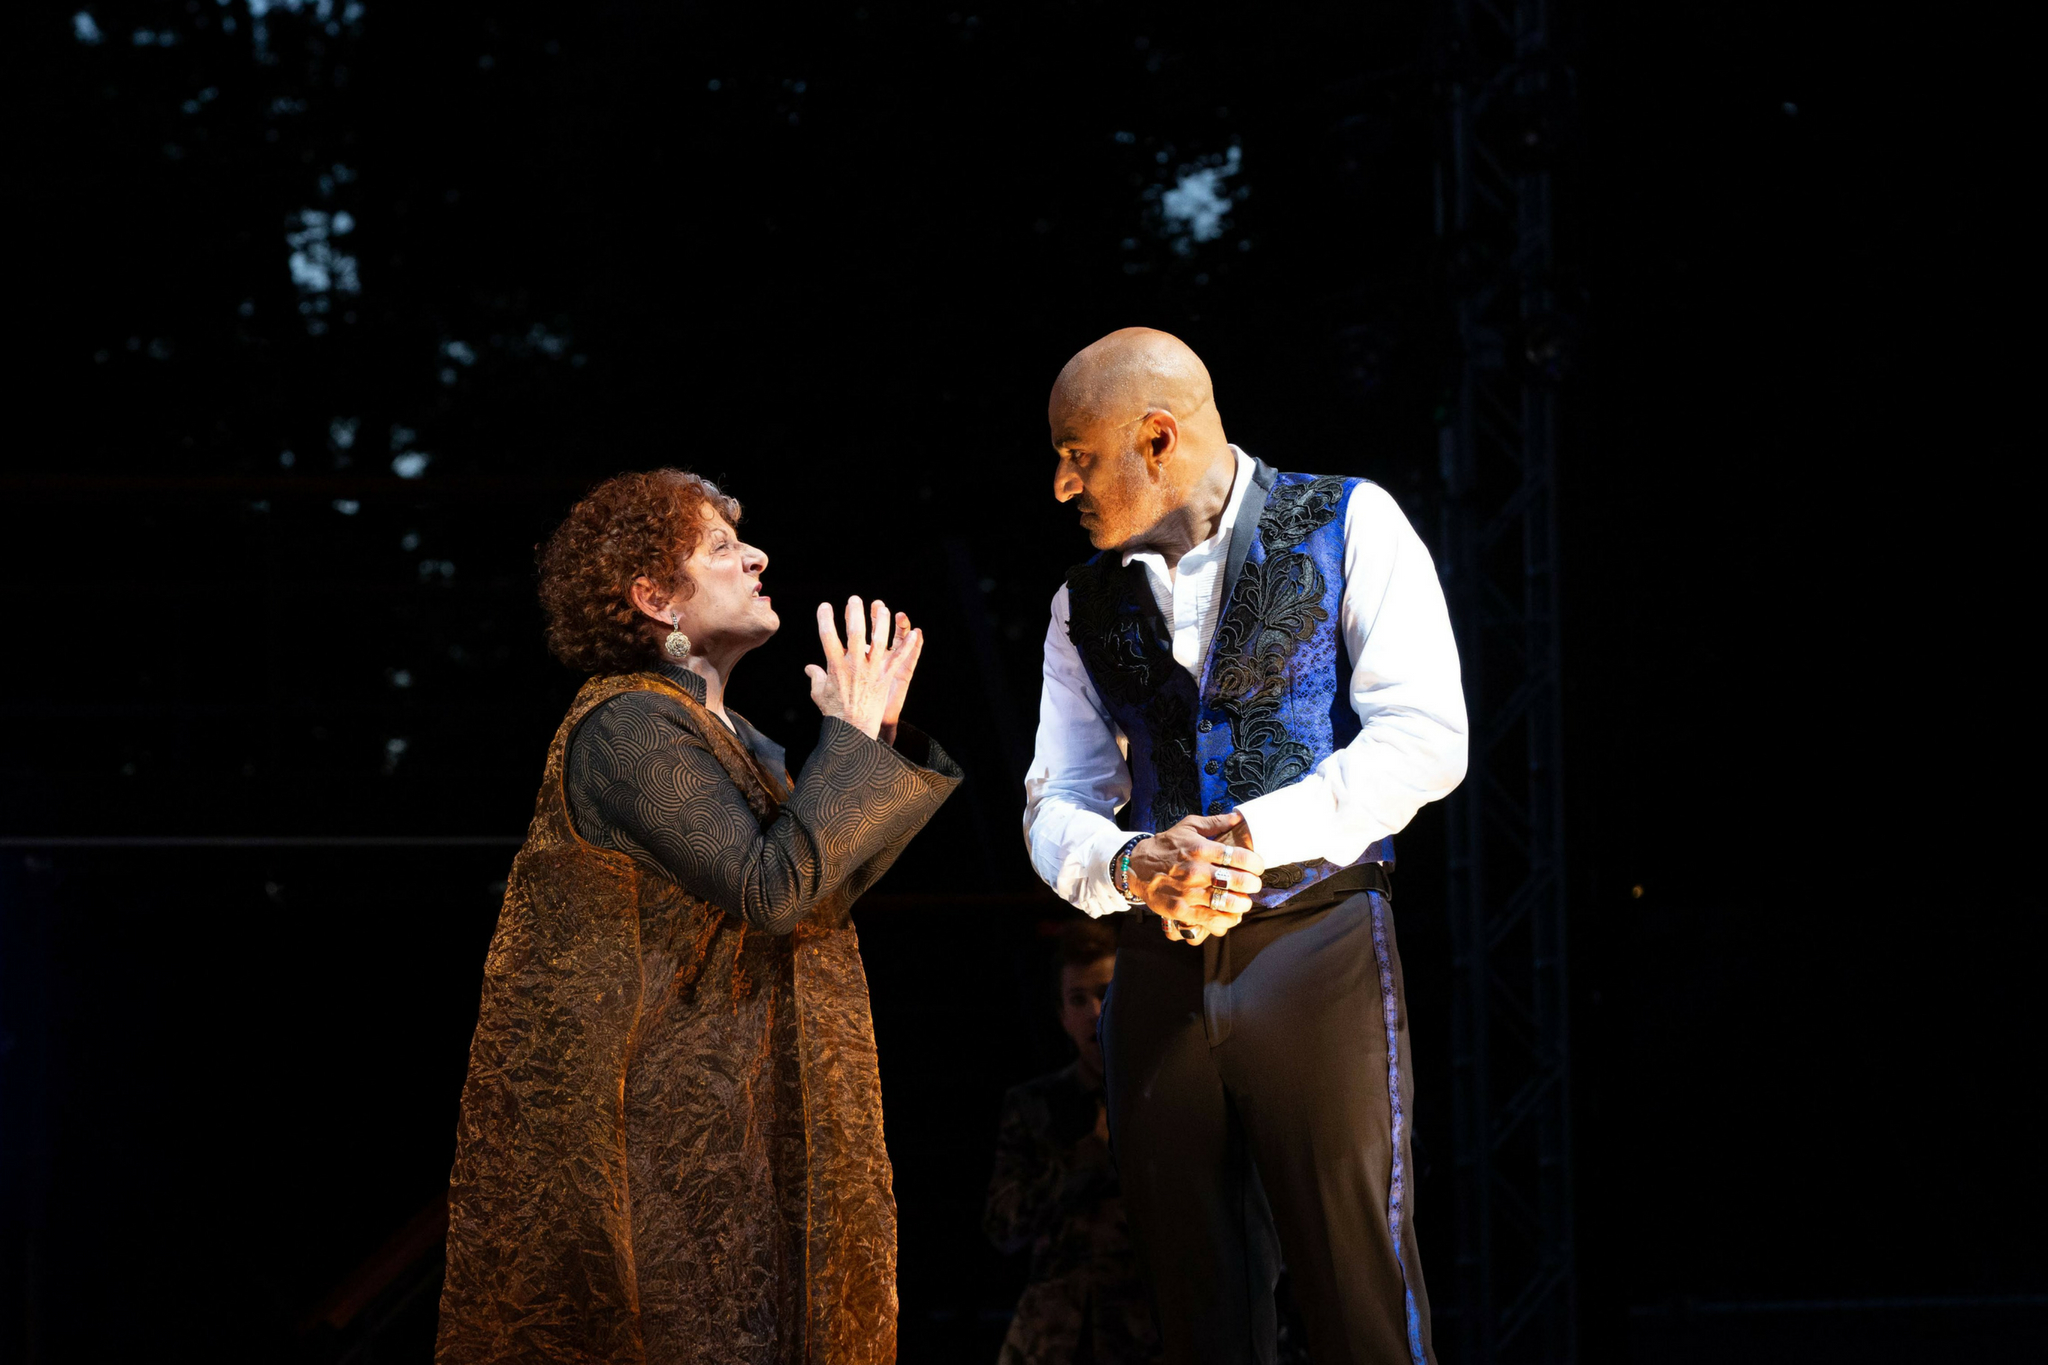 Bobbie Steinbach (Queen Margaret) and Faran Tahir (Richard III) in Richard III, Shakespeare on the Common 2018-Photo by Evgenia Eliseeva